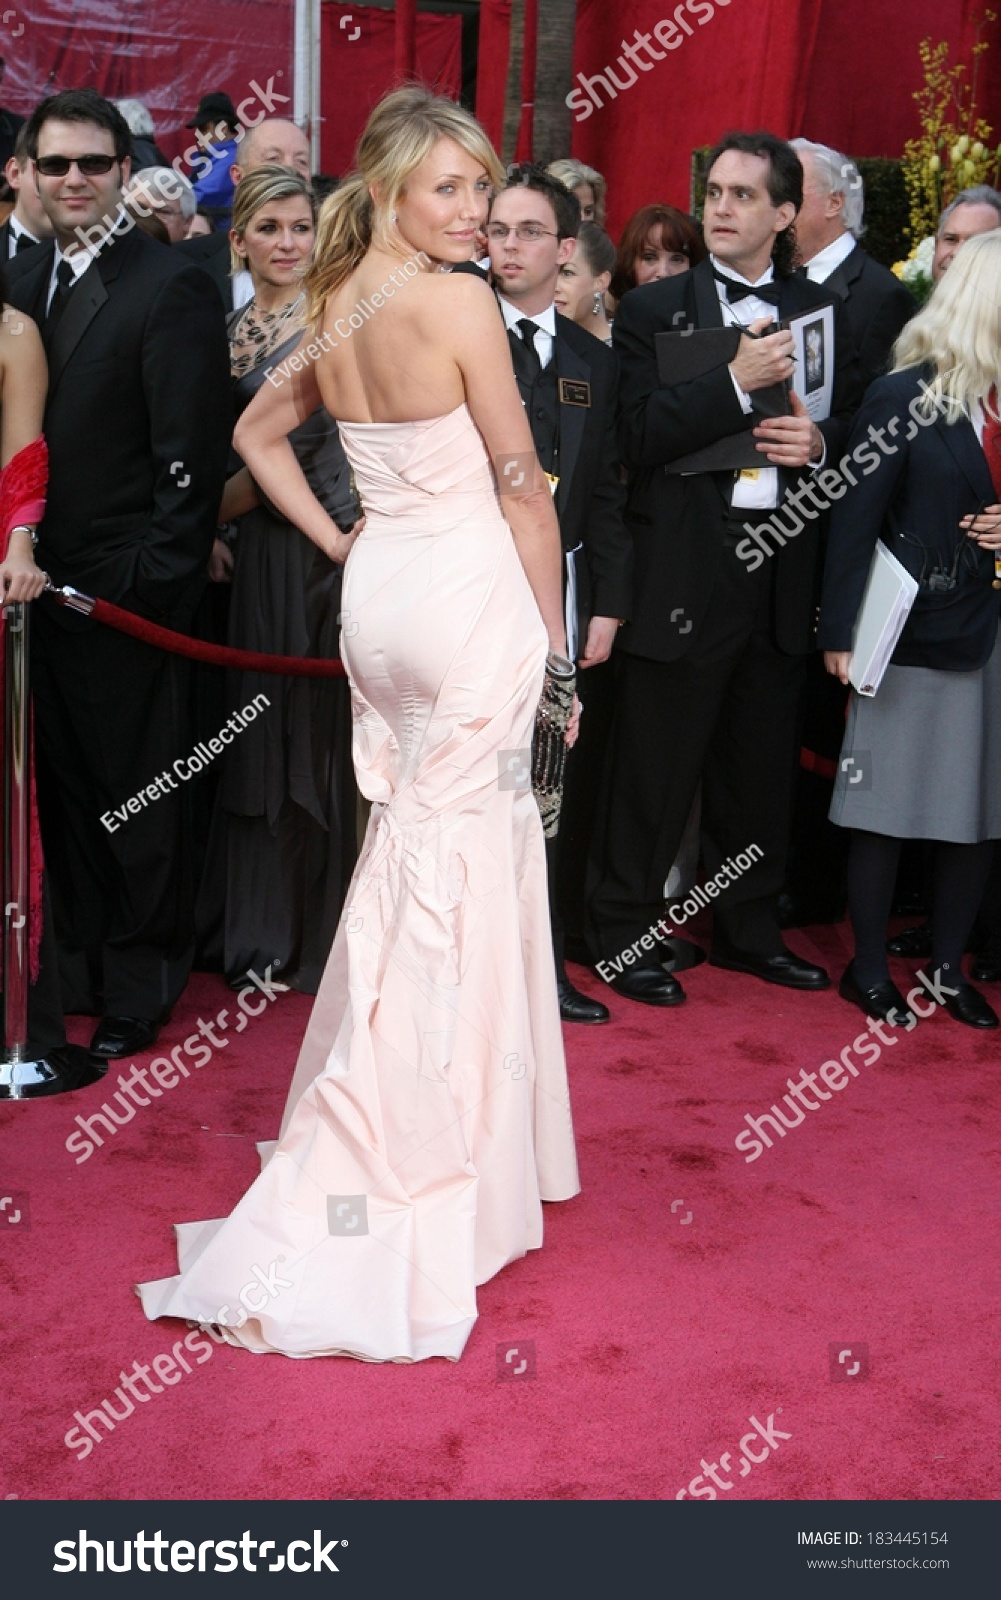 Cameron Diaz Wearing Christian Dior Gown Stock Photo (Edit Now ...